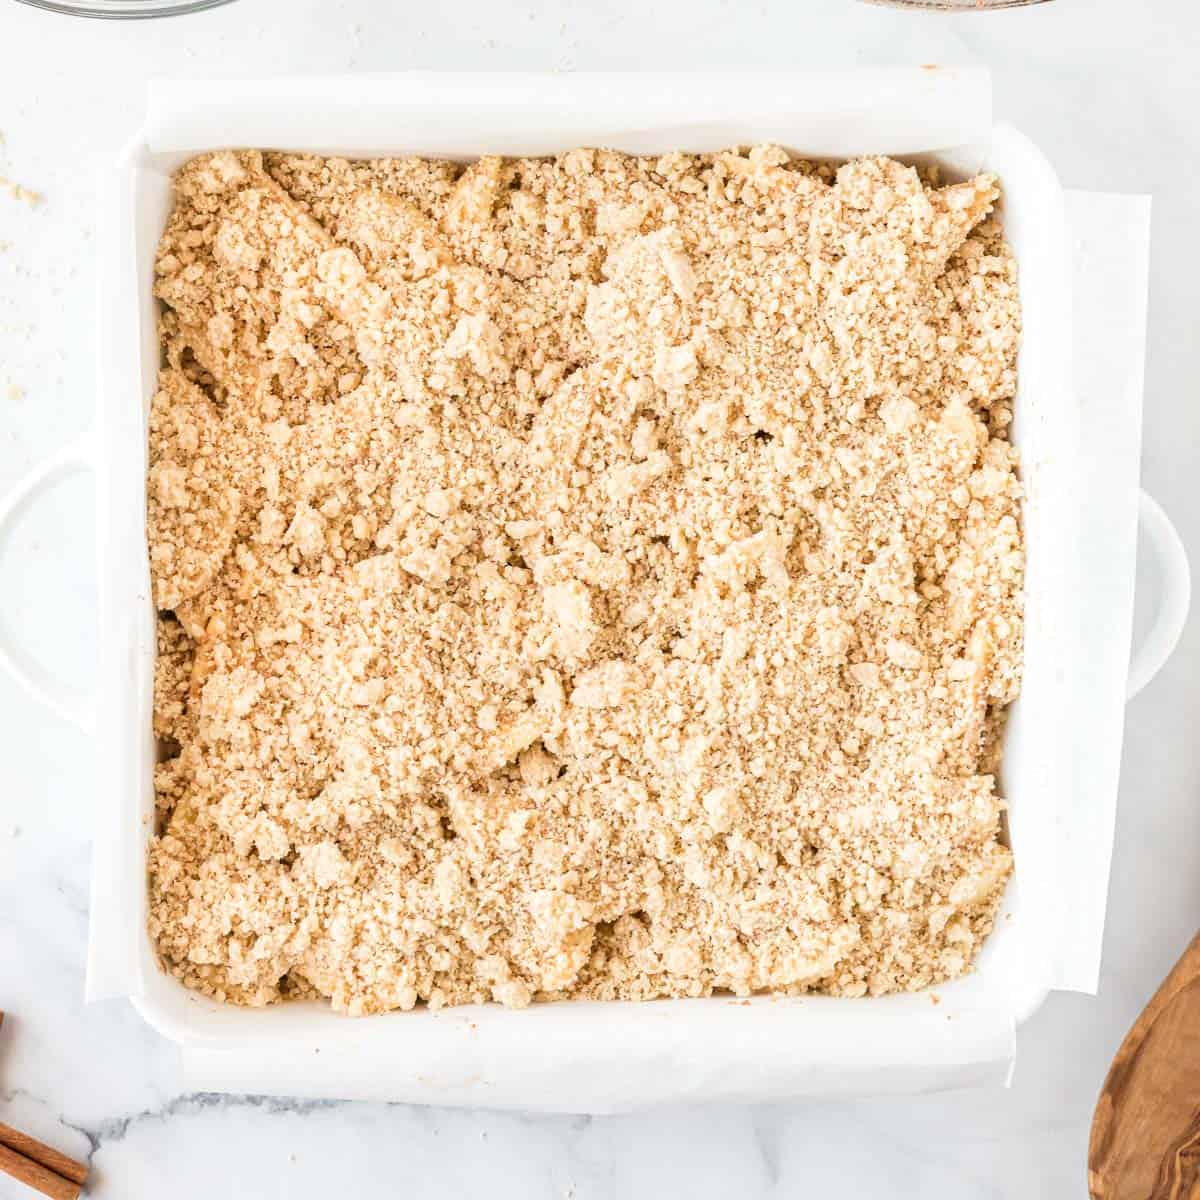 crumb topping added to the apple crisp bars in the pan